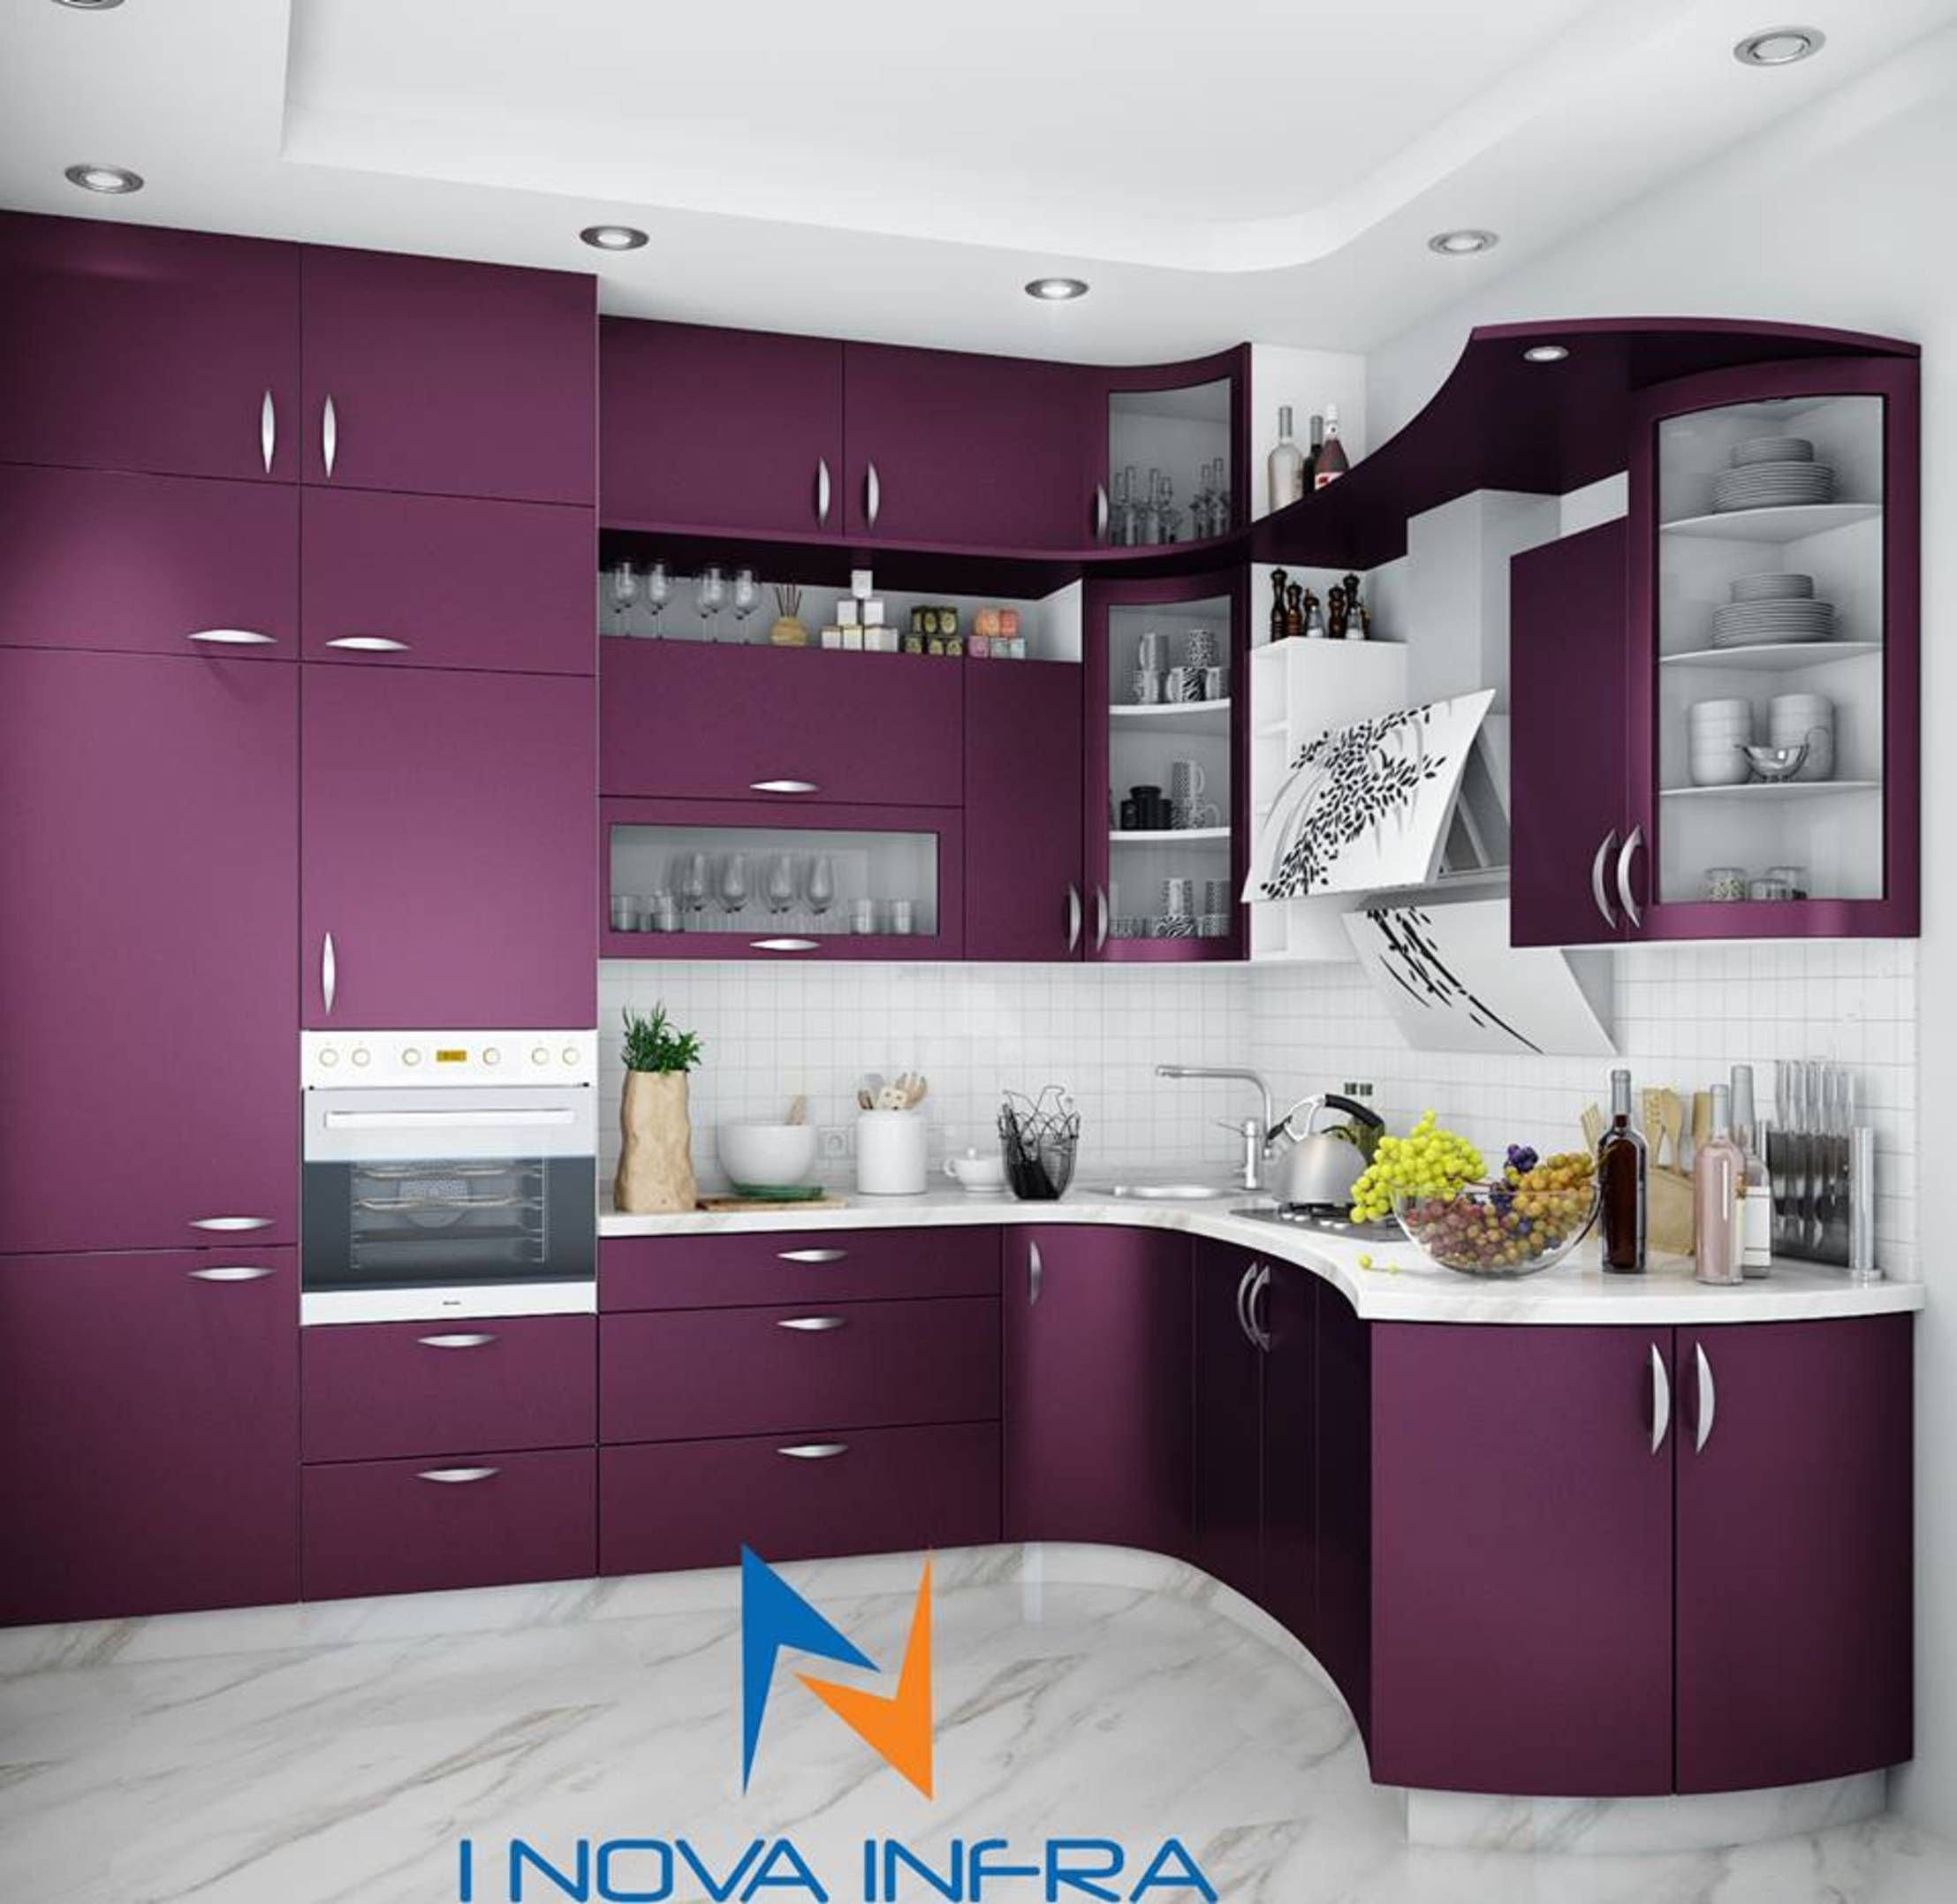 Inova Küchen 6 Ways To Store More In Your Small Indian Kitchen Kitchen